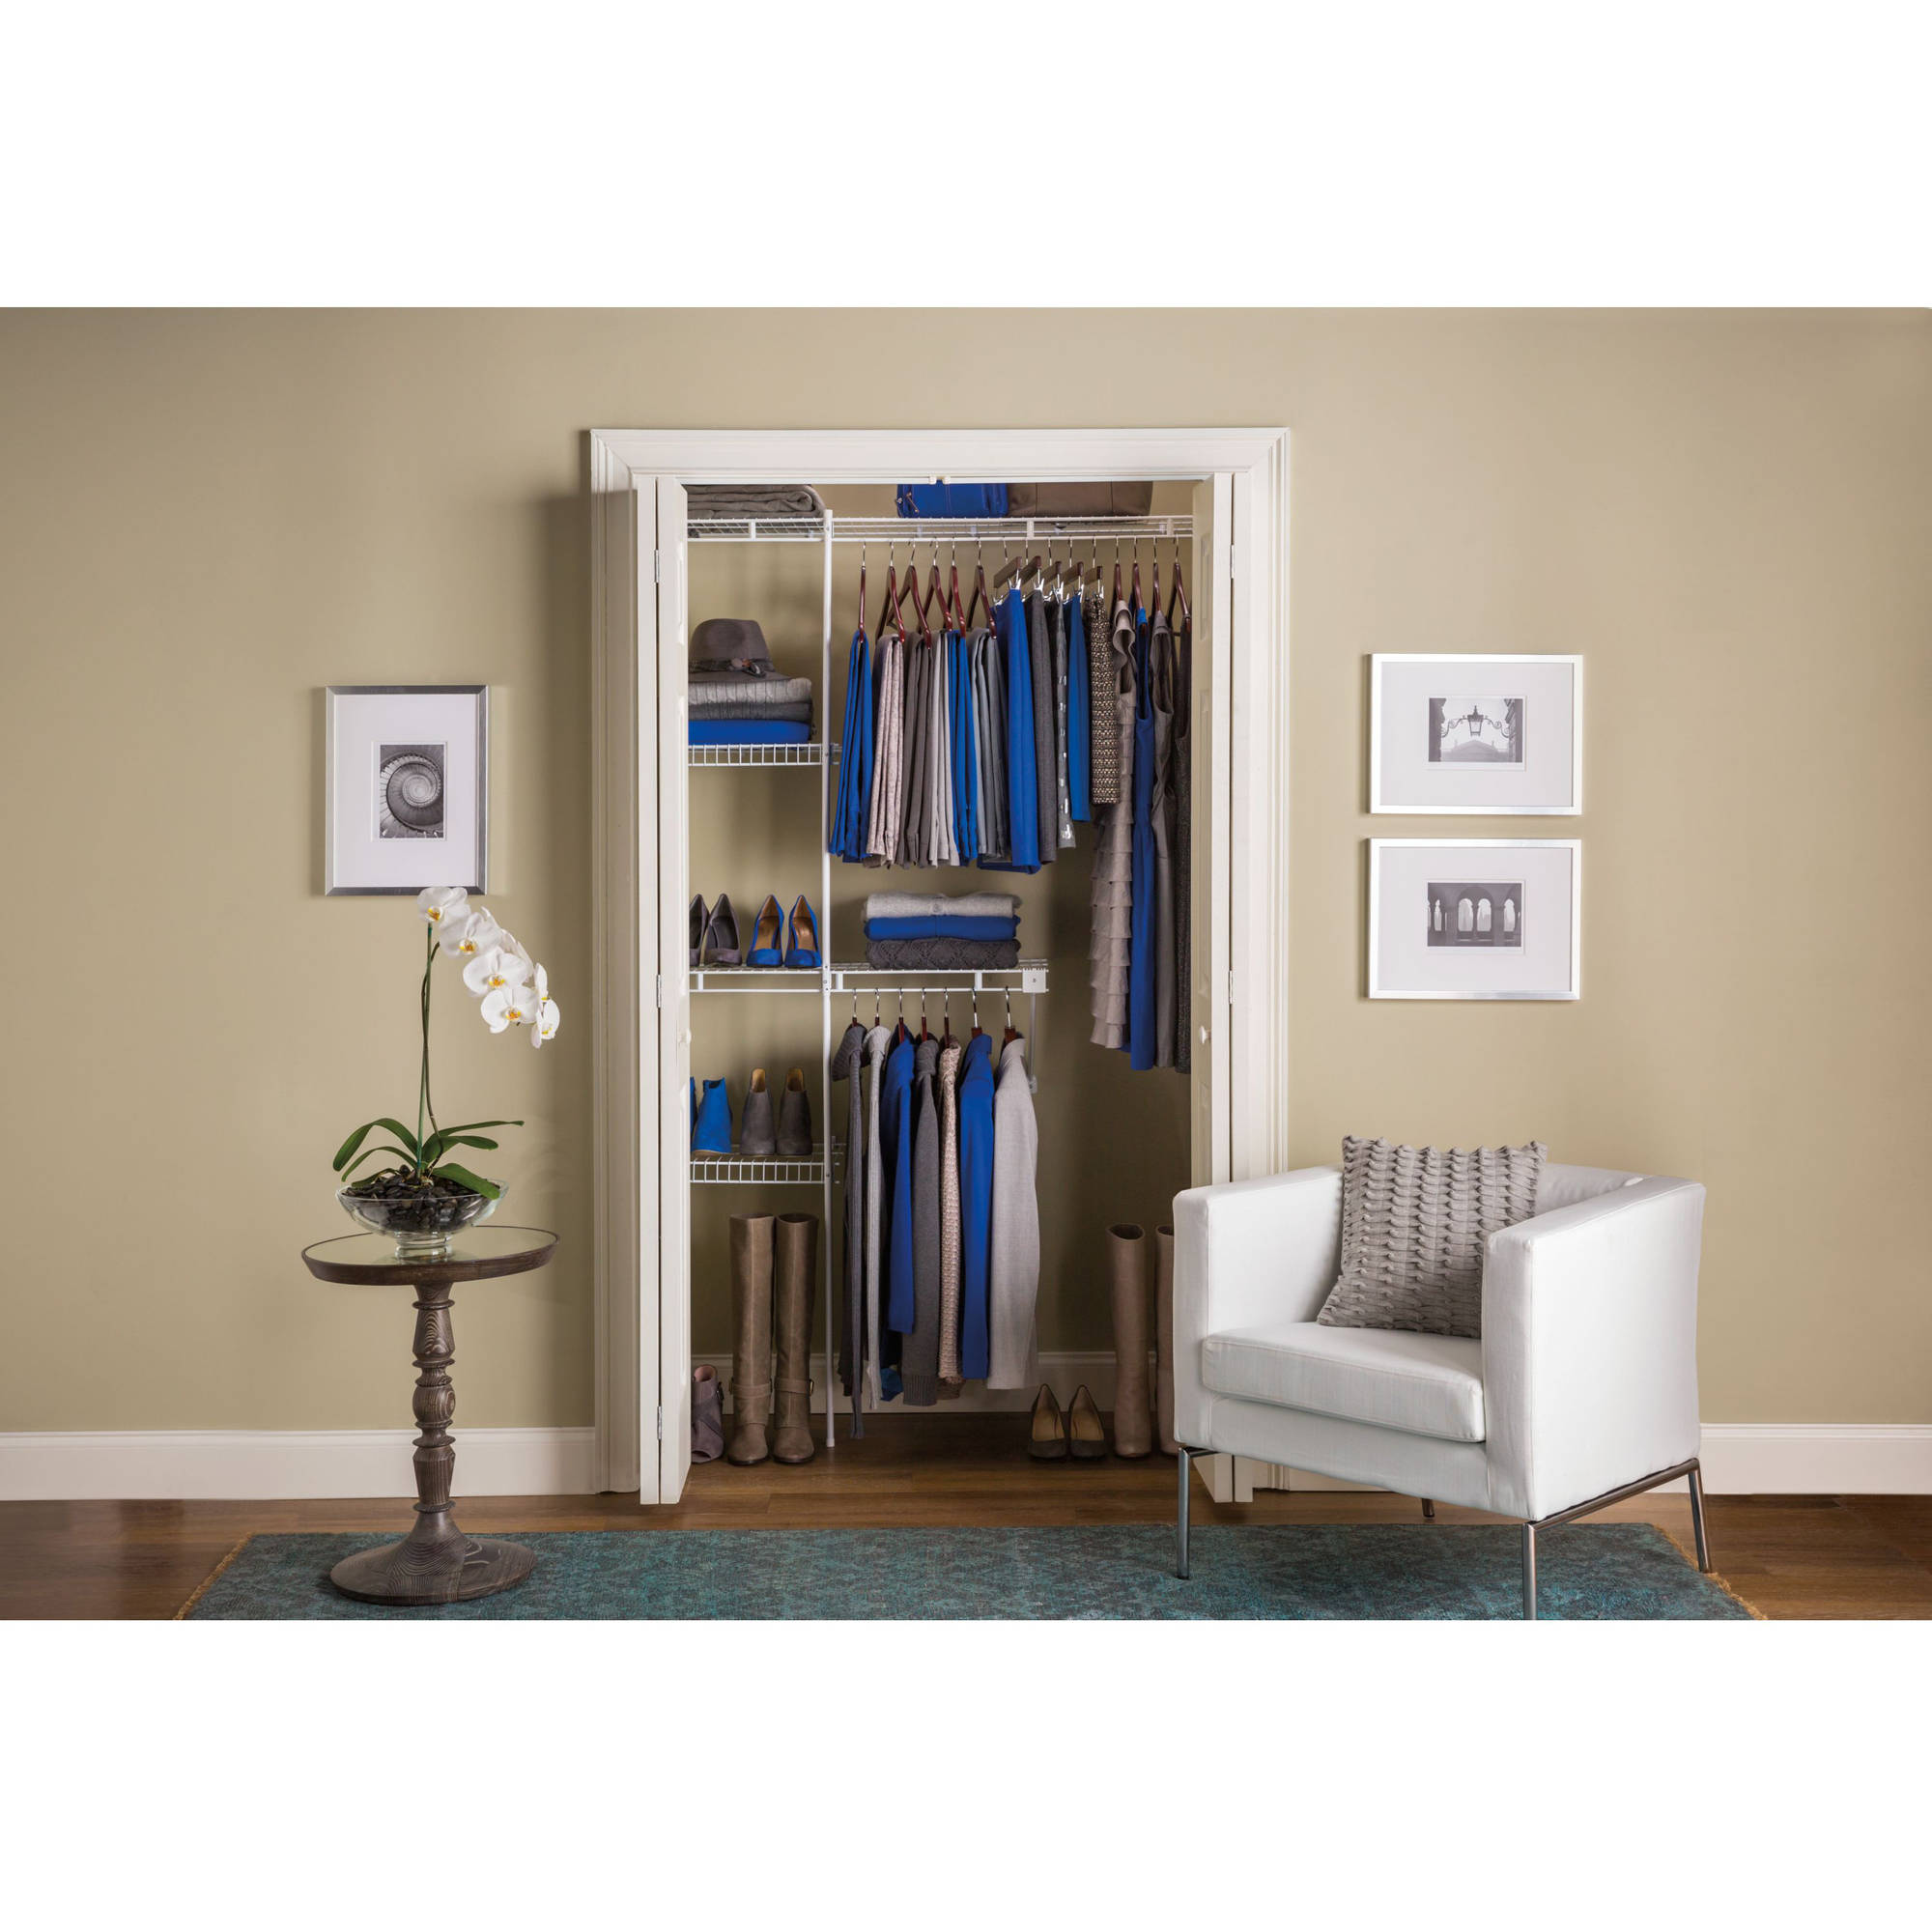 Cheap hanging closet organizers at walmart roselawnlutheran Pictures of closet organizers